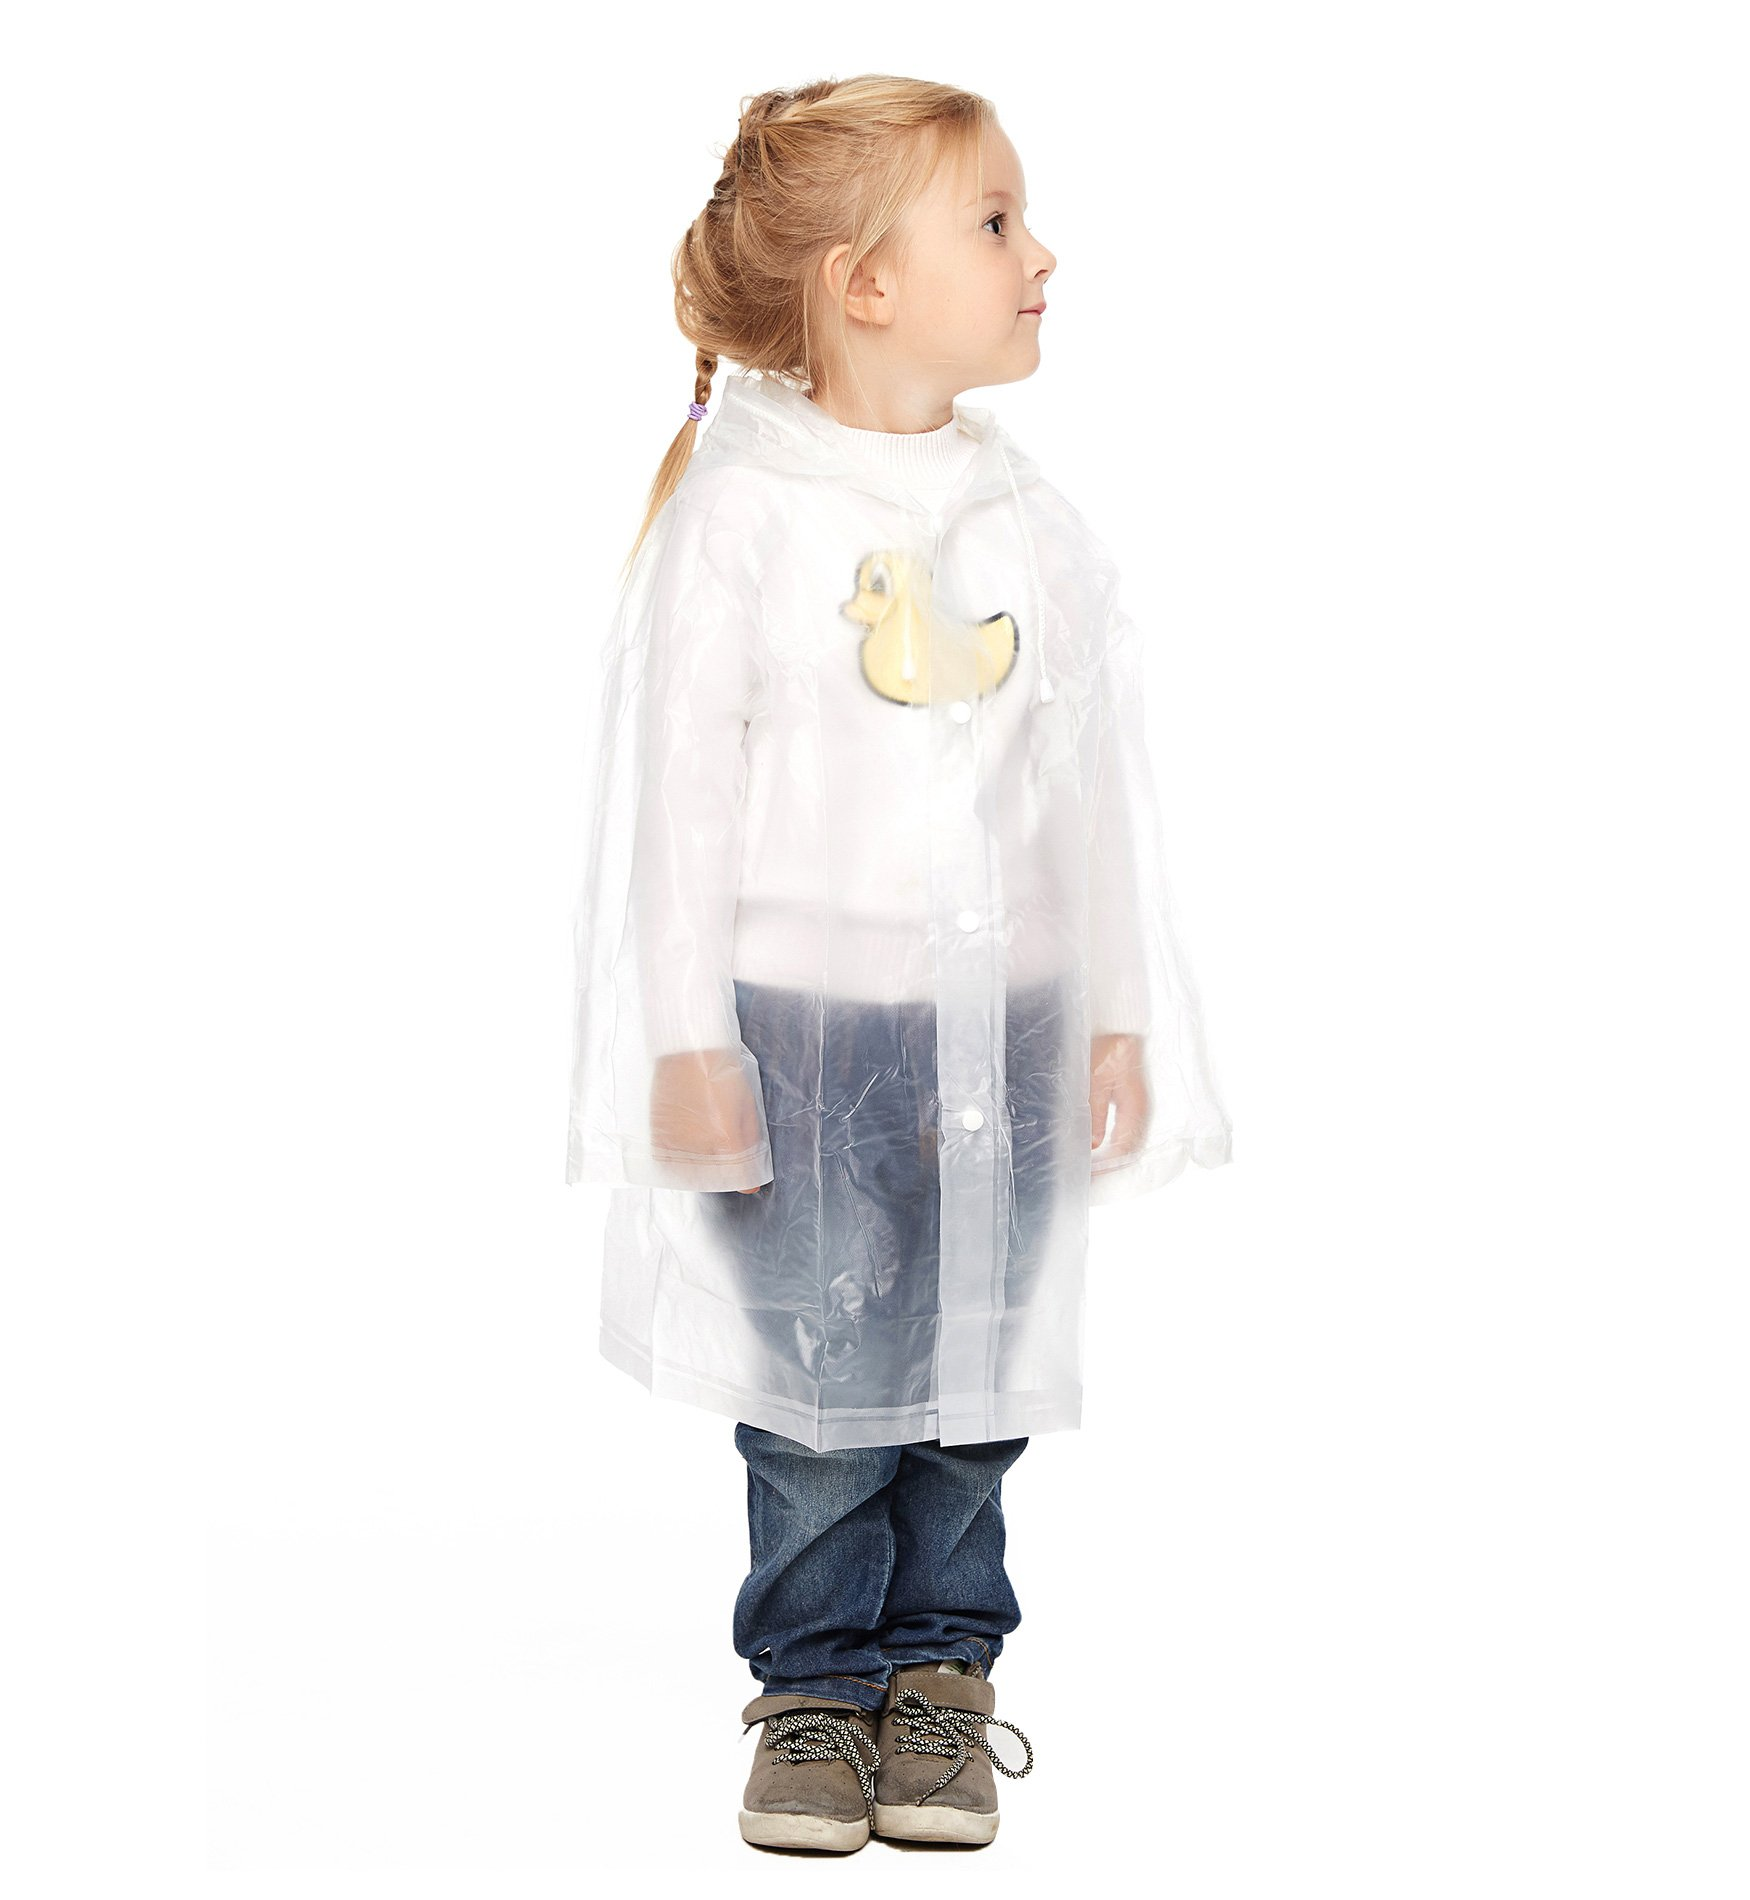 Hilarocky Lightweight Children Raincoat Waterproof Rain Ponchos Outwear